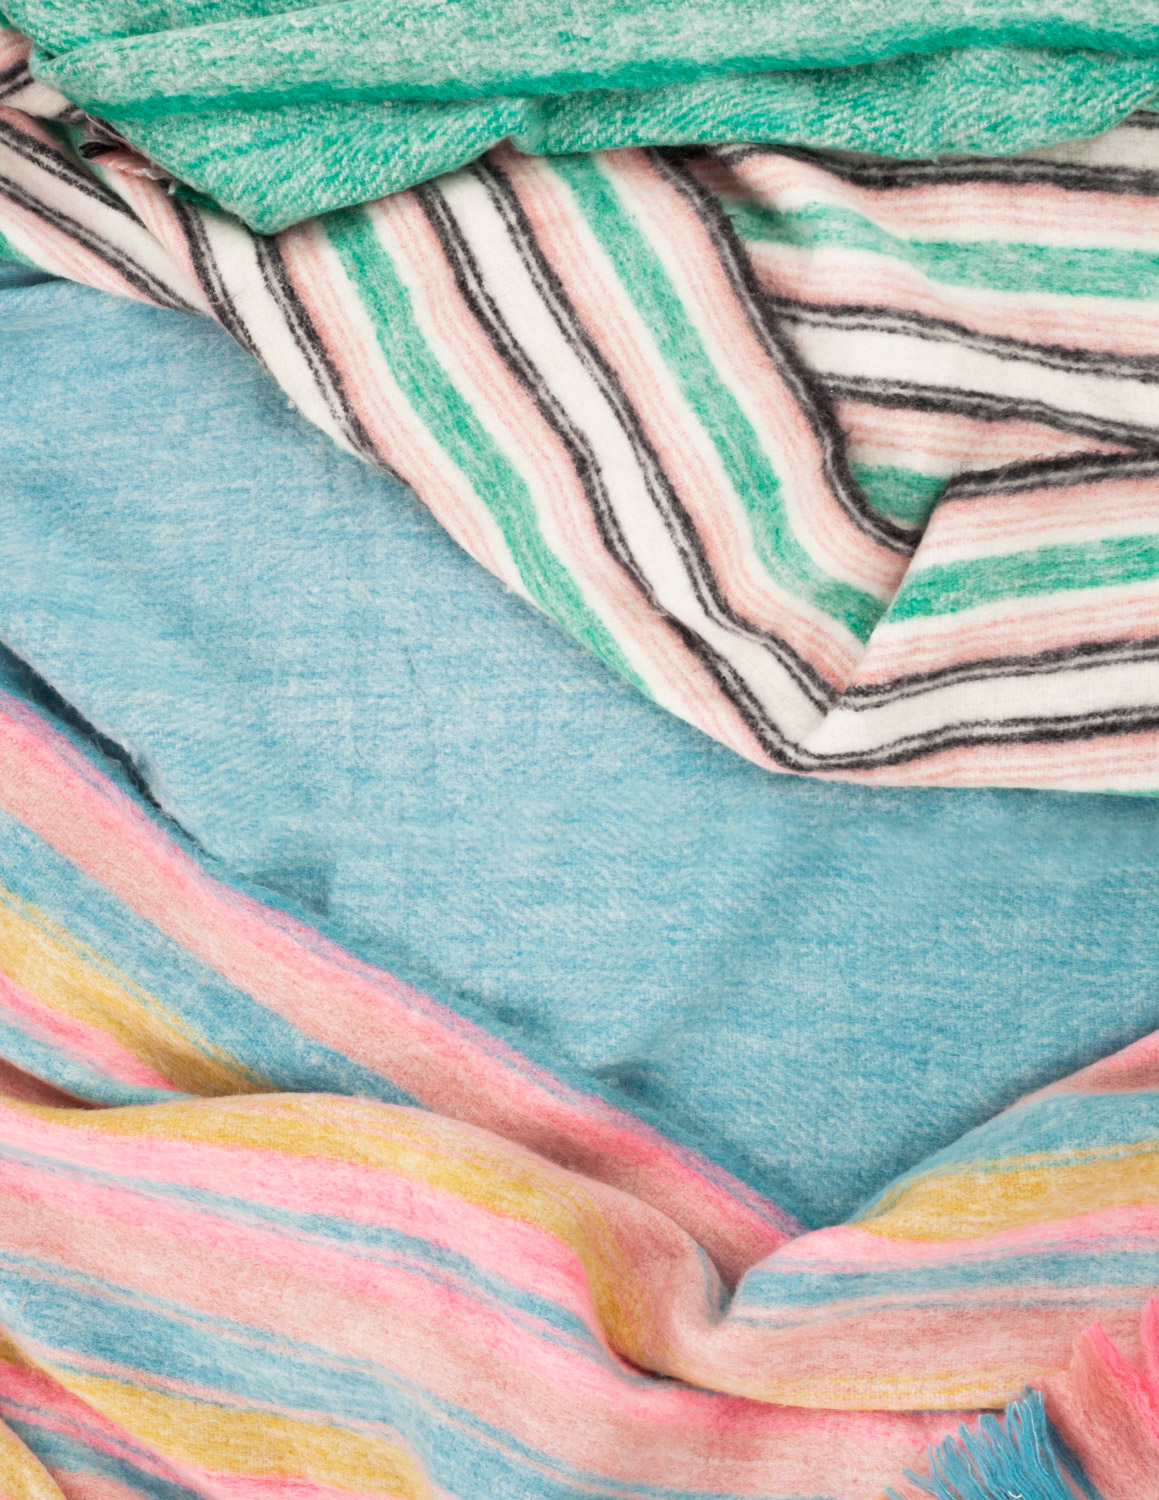 Textiles by Archive NY